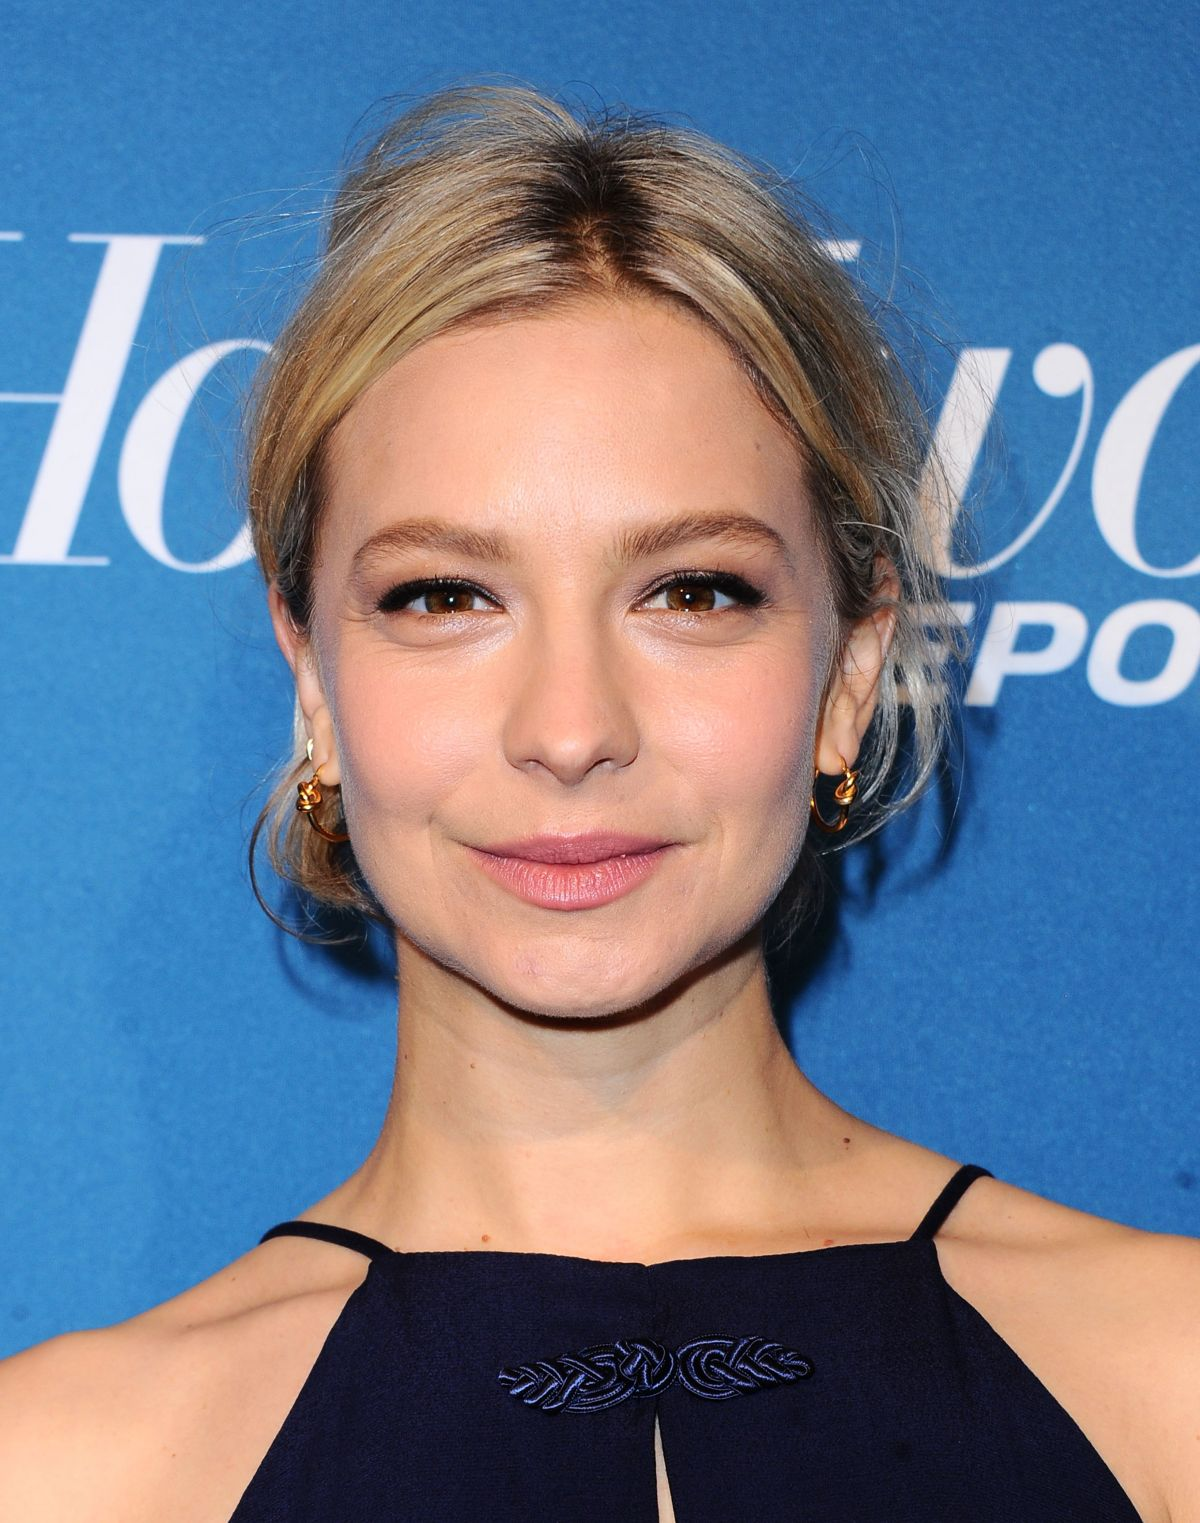 ANNABELLE DEXTER-JONES at The Hollywood Reporter 5th Annual Nominees Night in Beverly Hills 02/06/2017